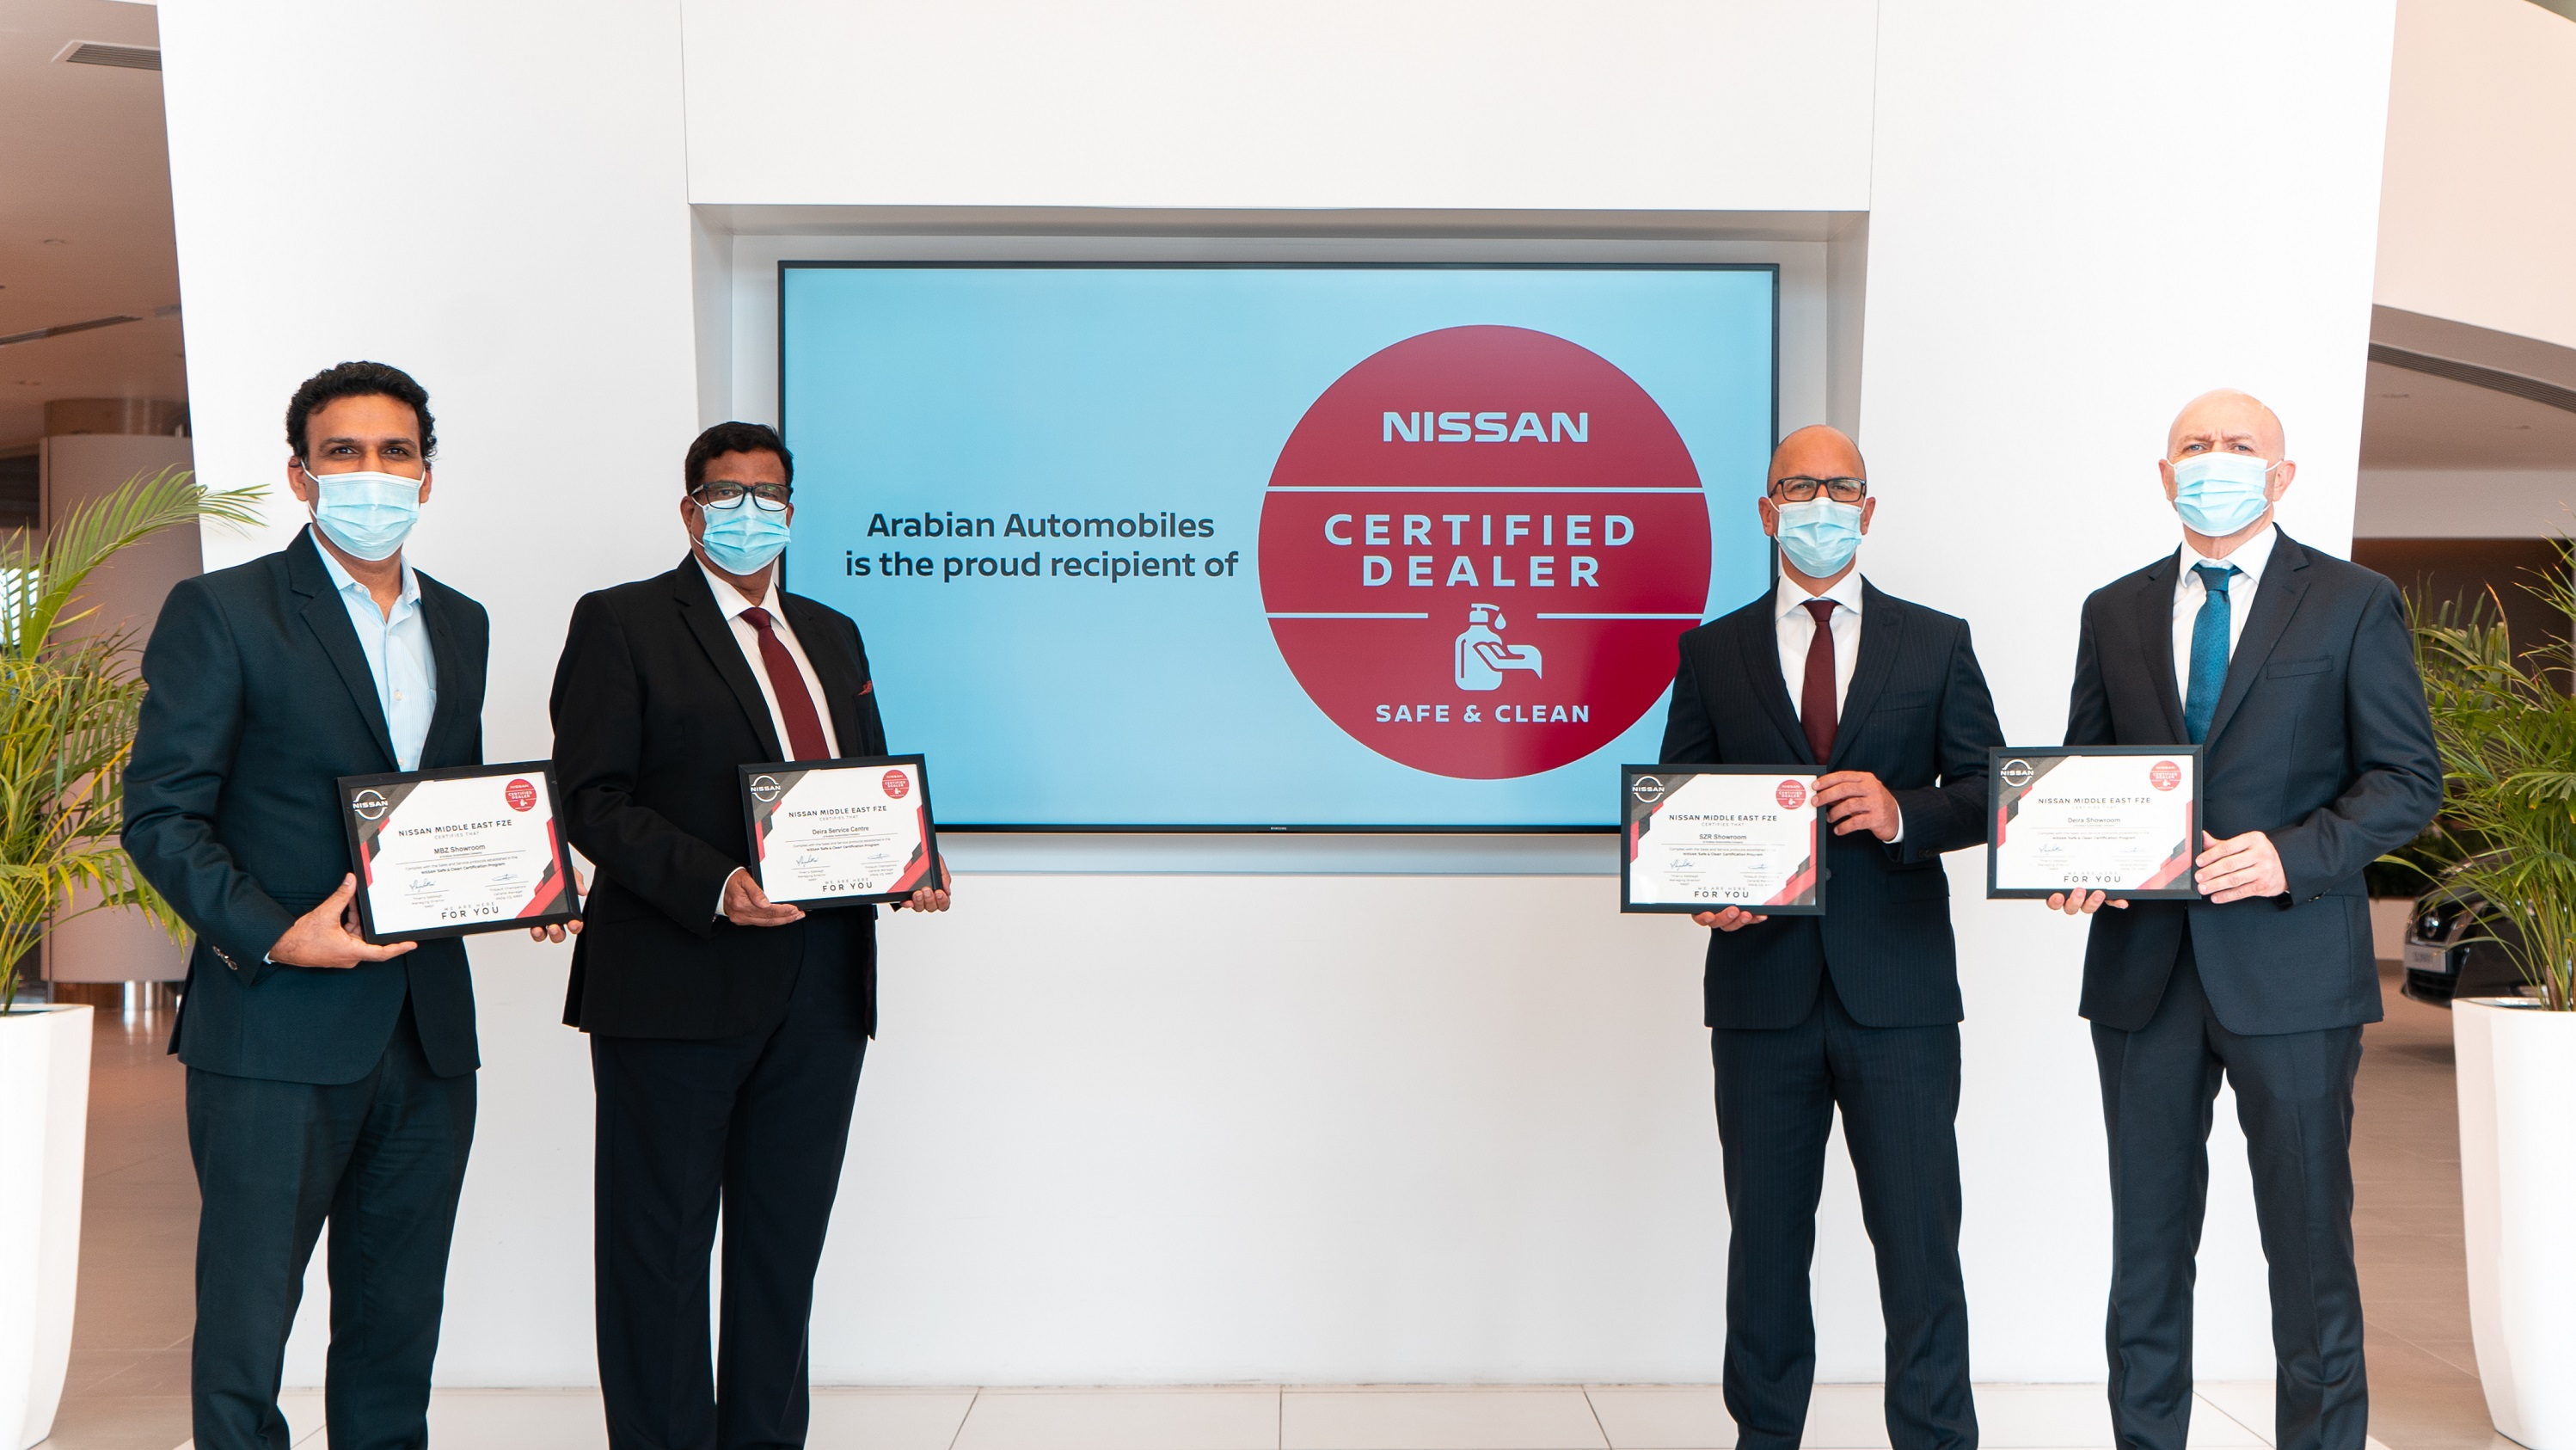 Arabian Automobiles awarded 'Safe and Clean' certification from Nissan